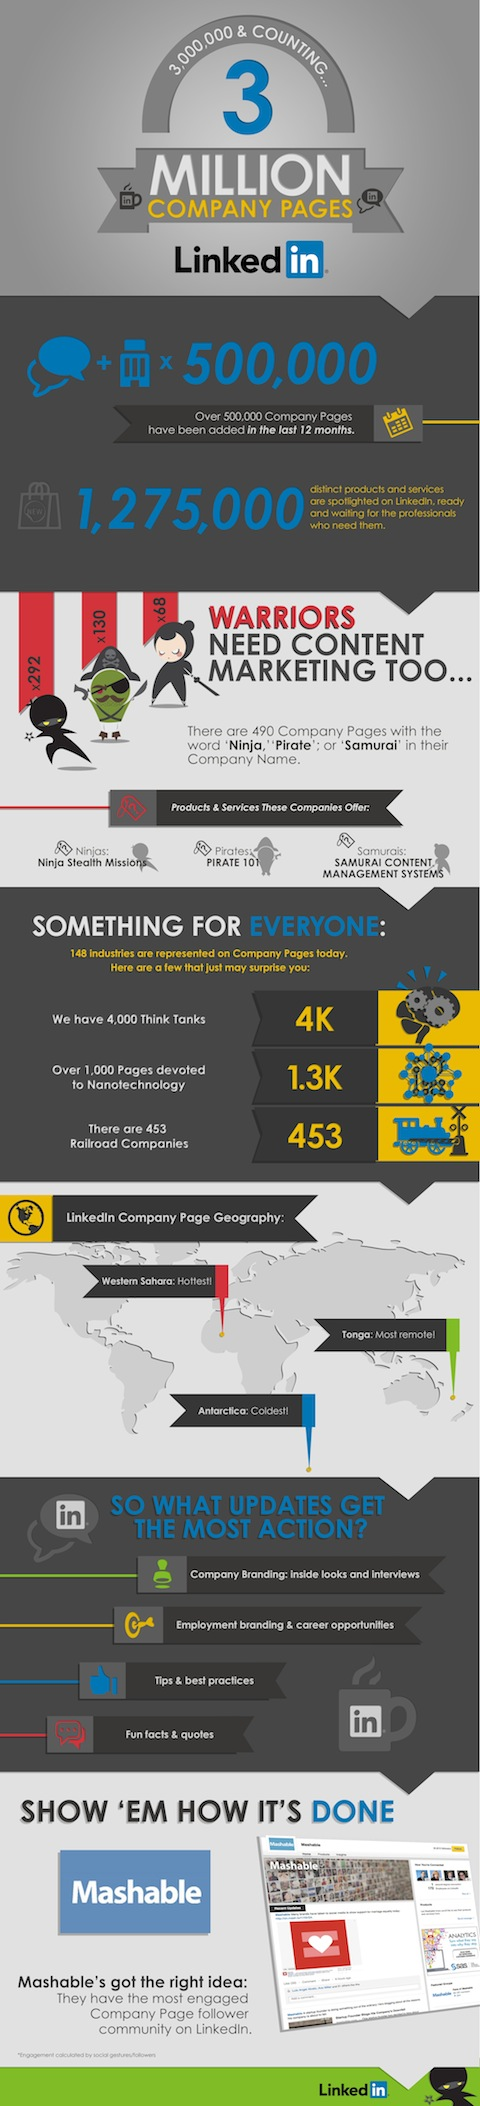 linkedin company page infographic